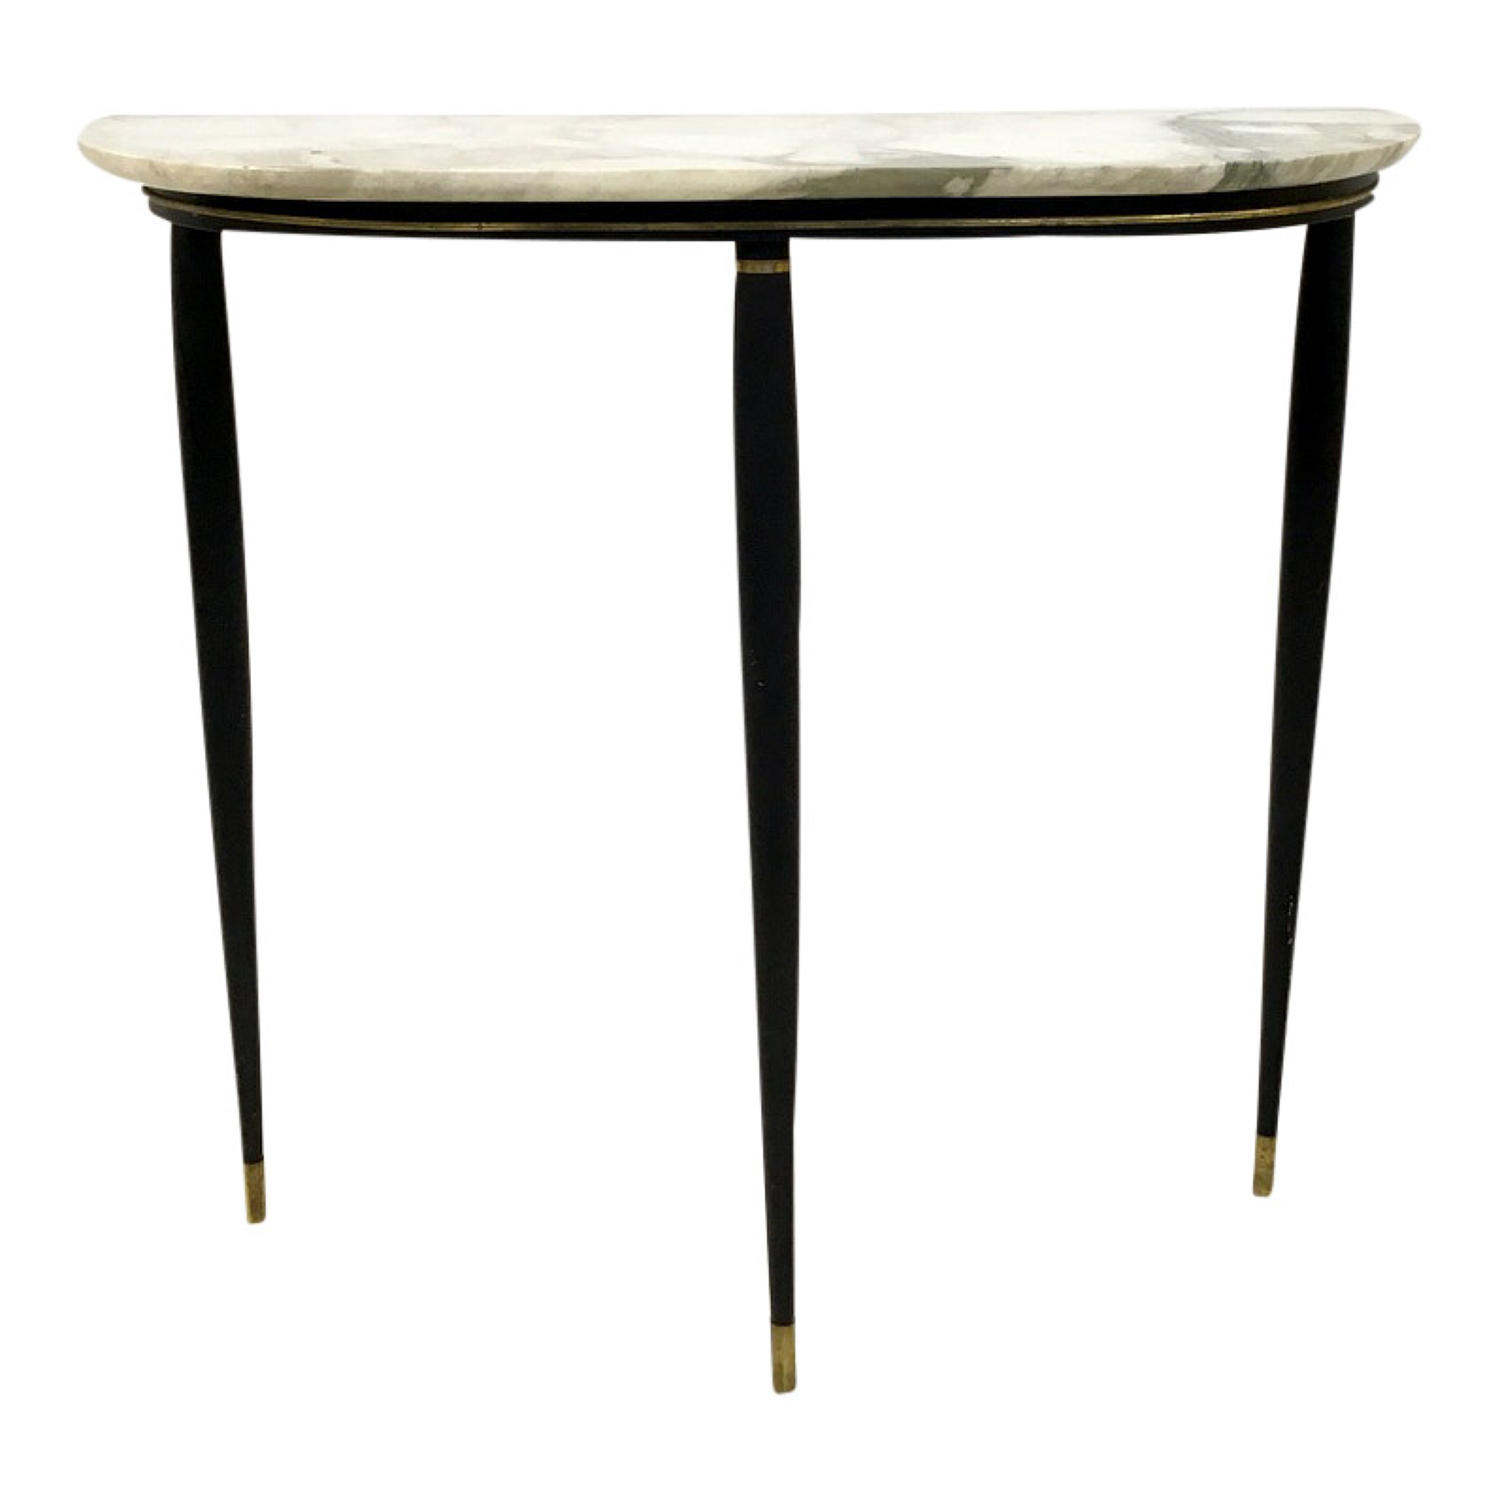 Italian marble, metal and brass console table